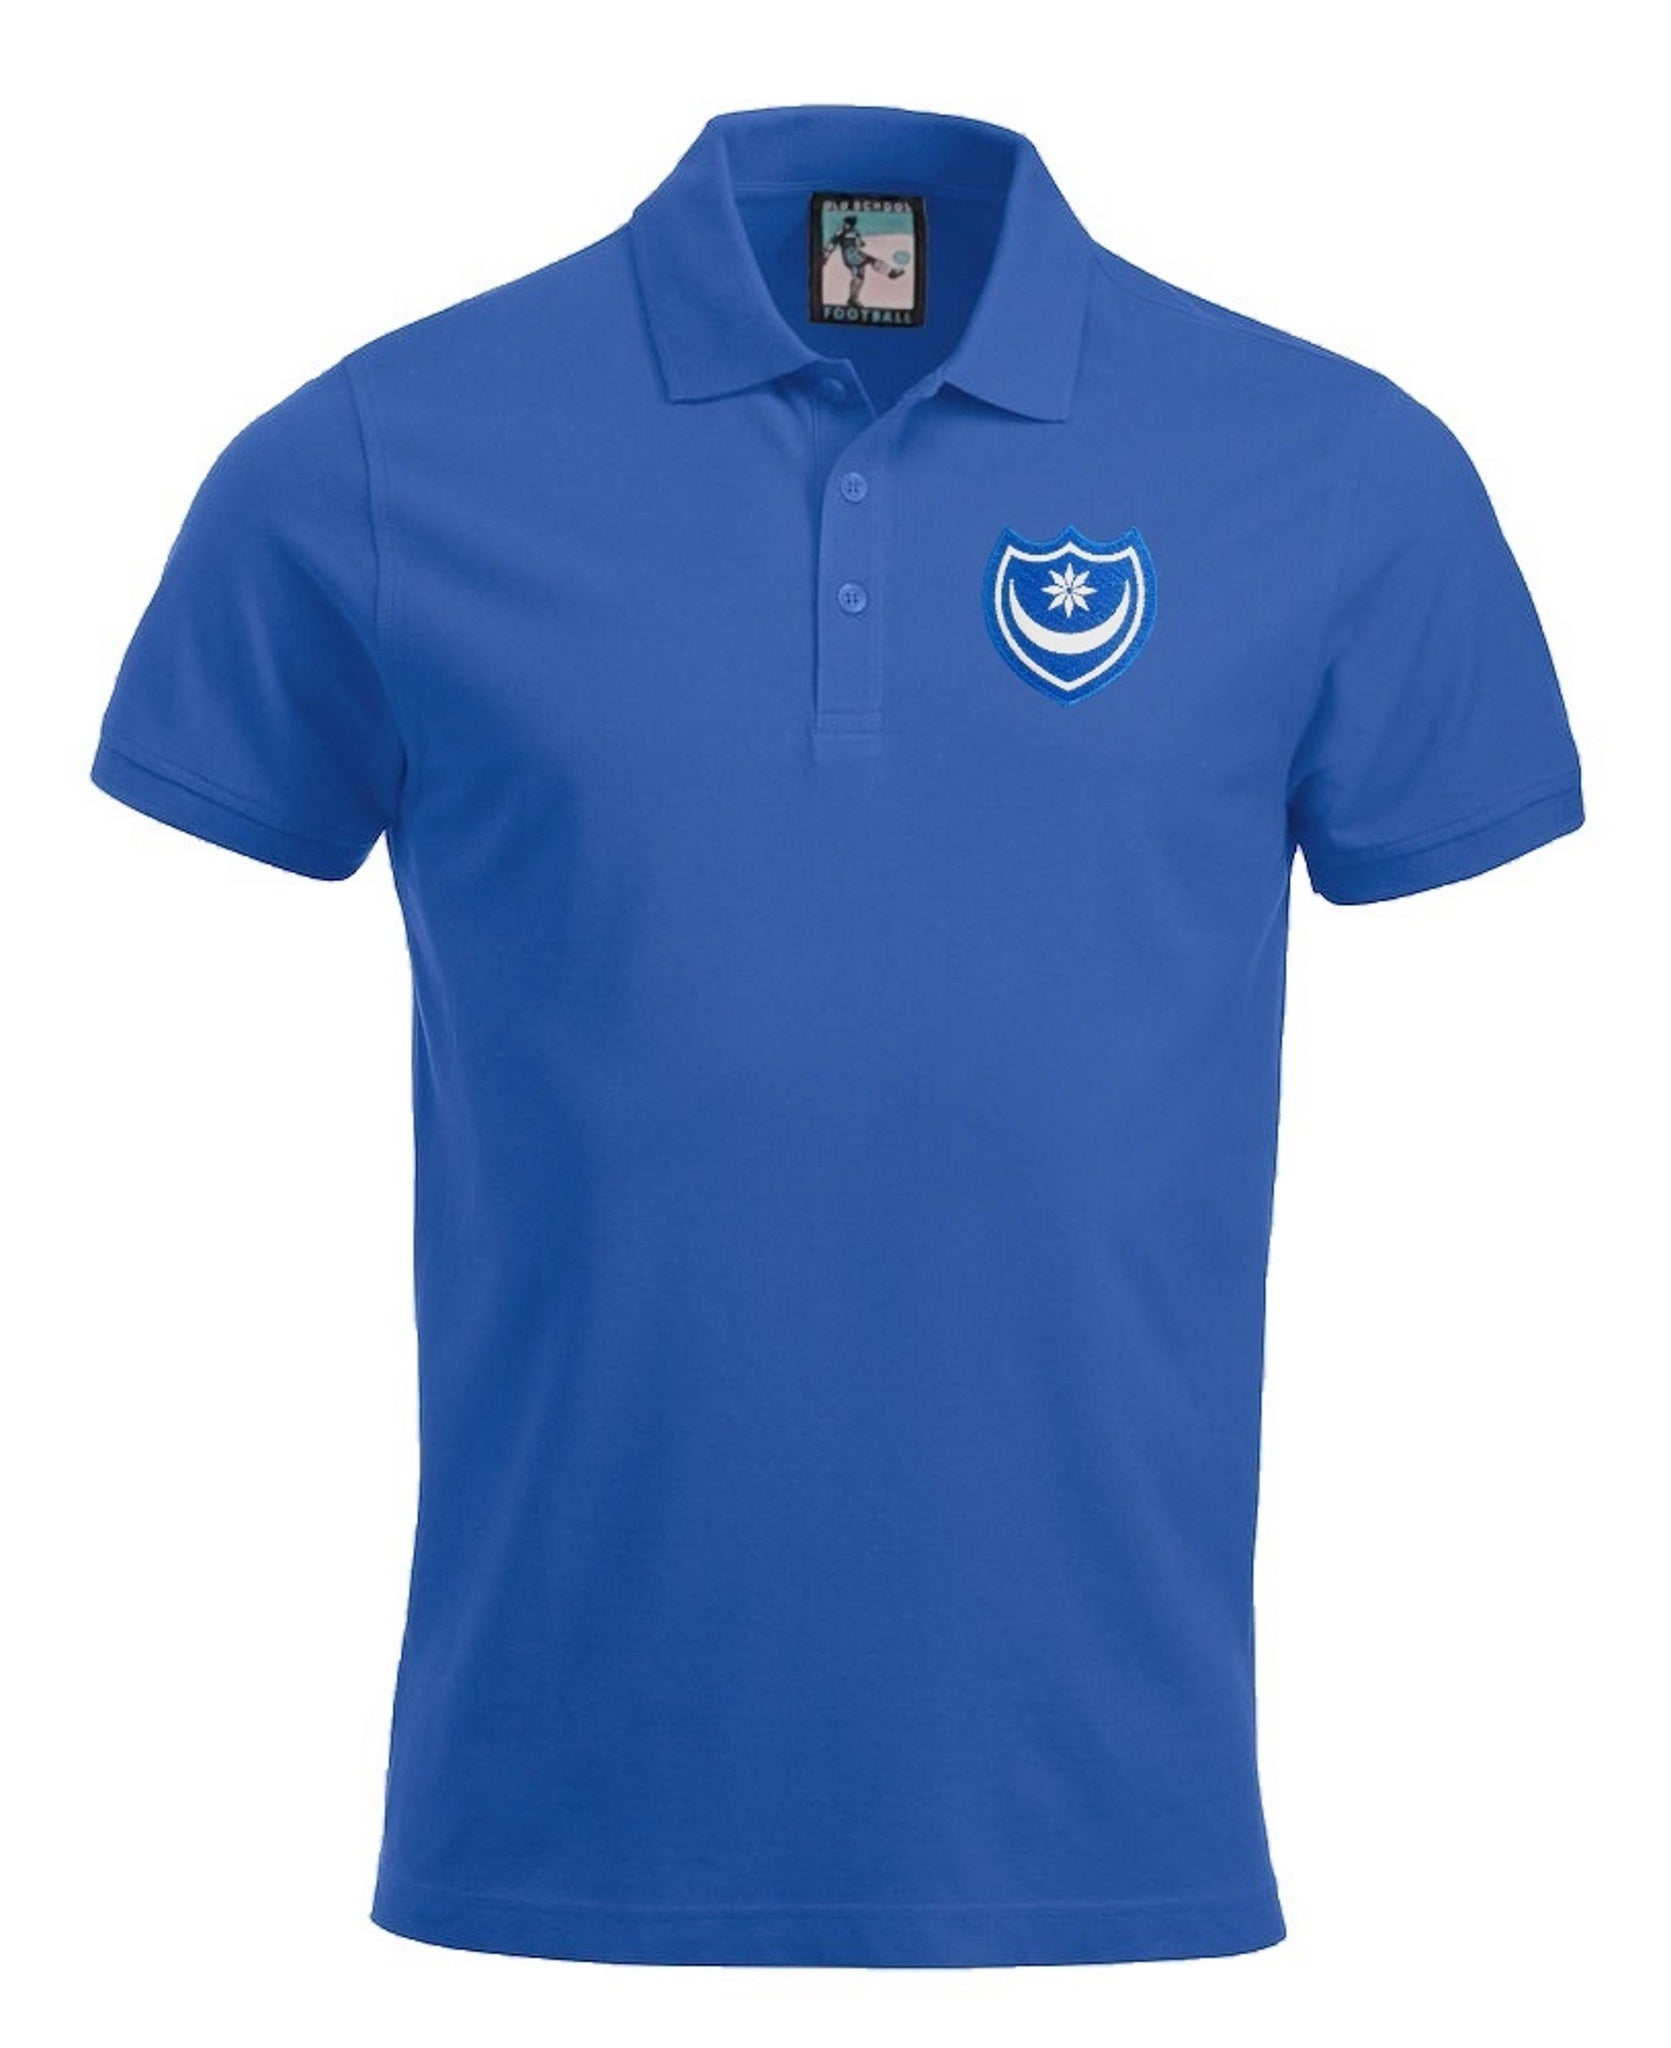 Portsmouth Retro 1960s Football Polo Shirt - Polo